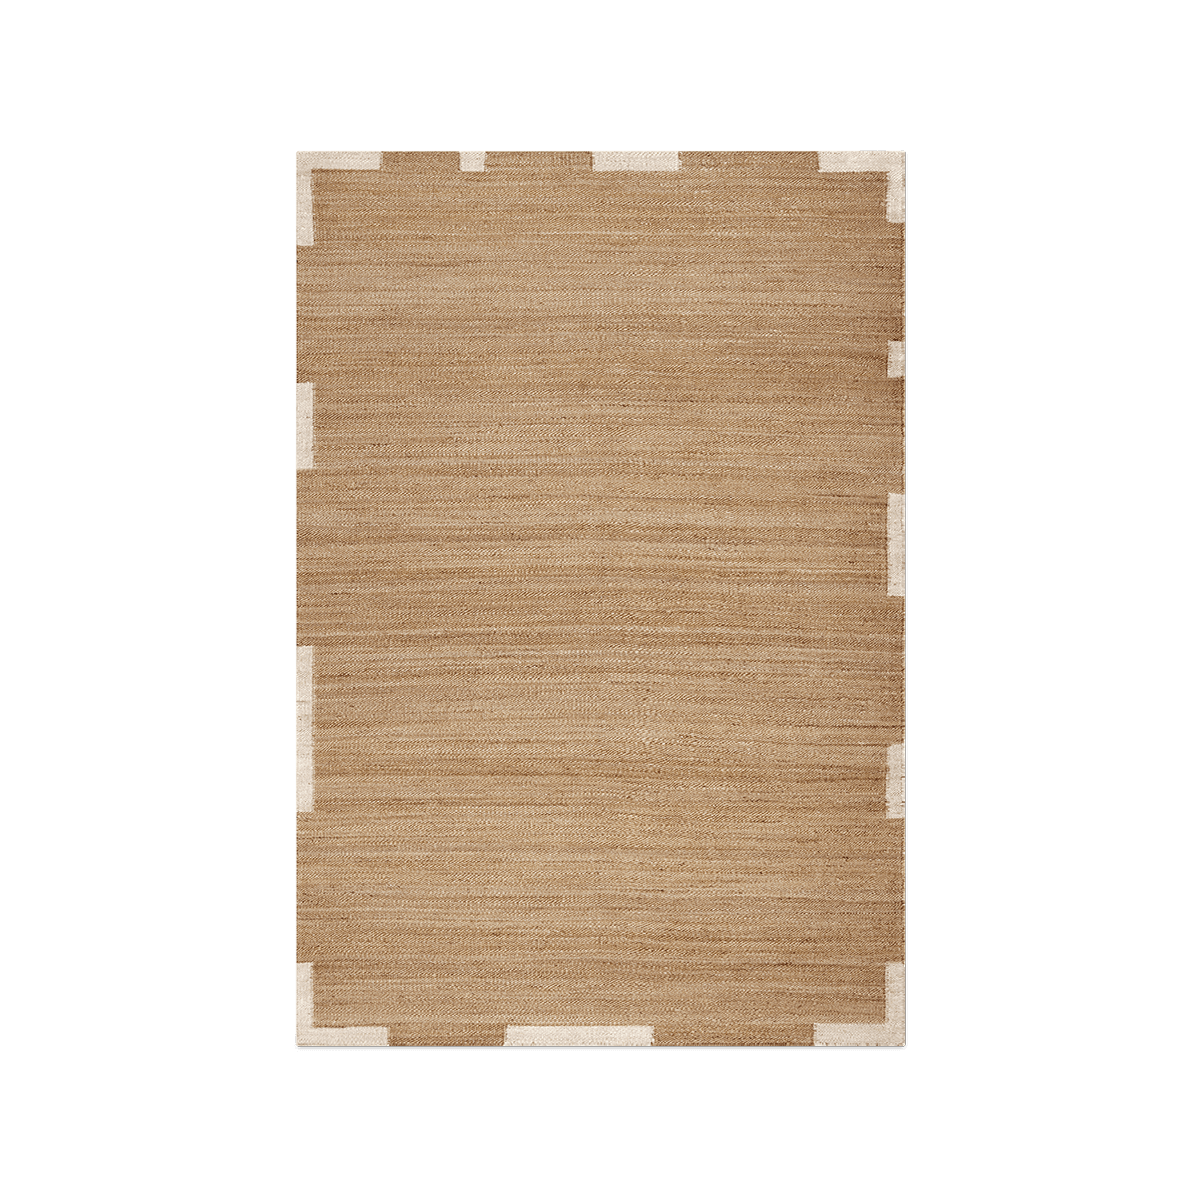 Product image of Jute Edge Cream, a jute rug with an uneven frame in a cream color.